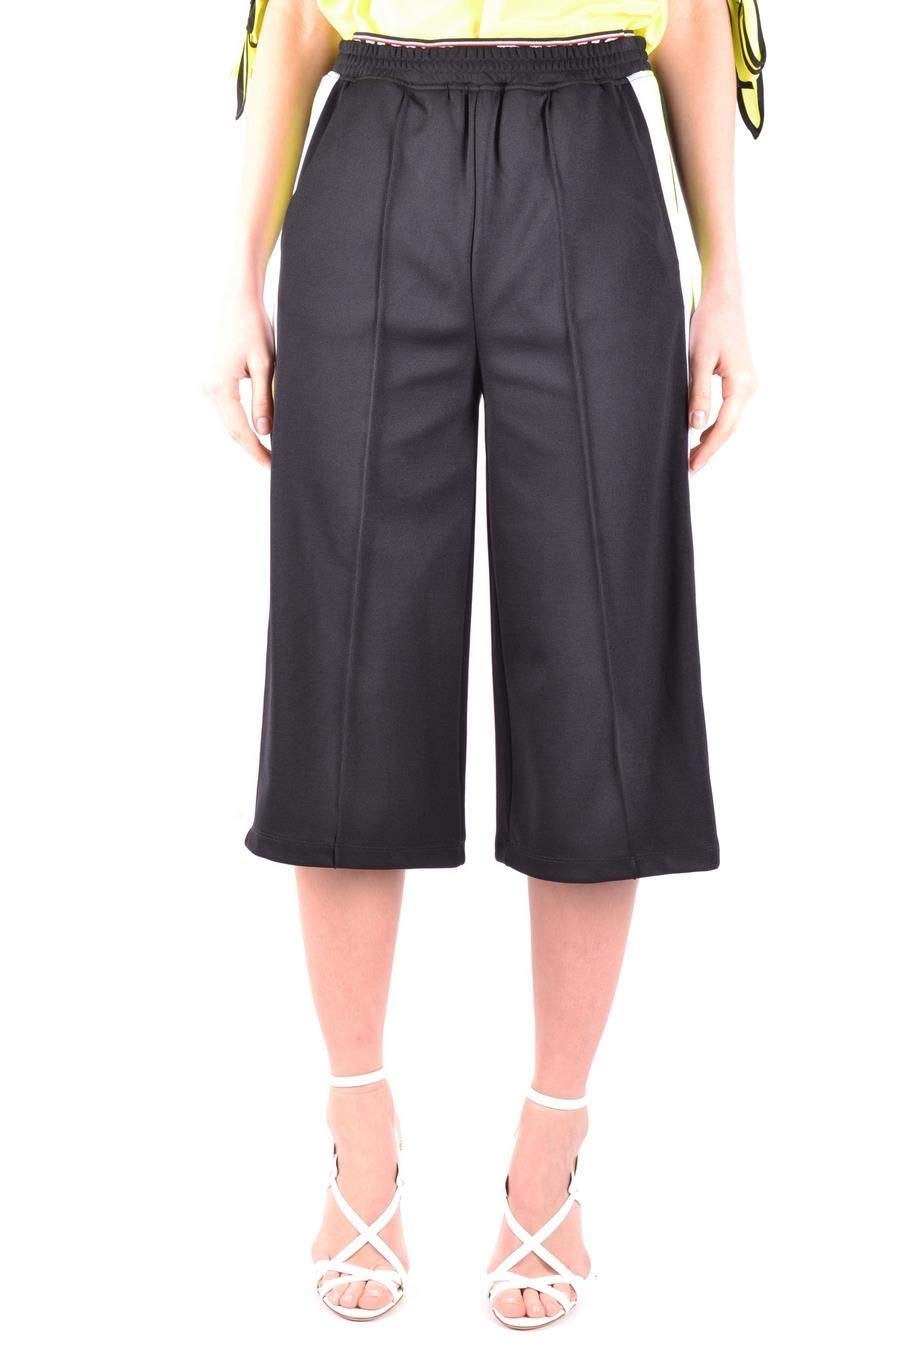 Pinko Women's GRADIREZ99 Black Polyester Pants